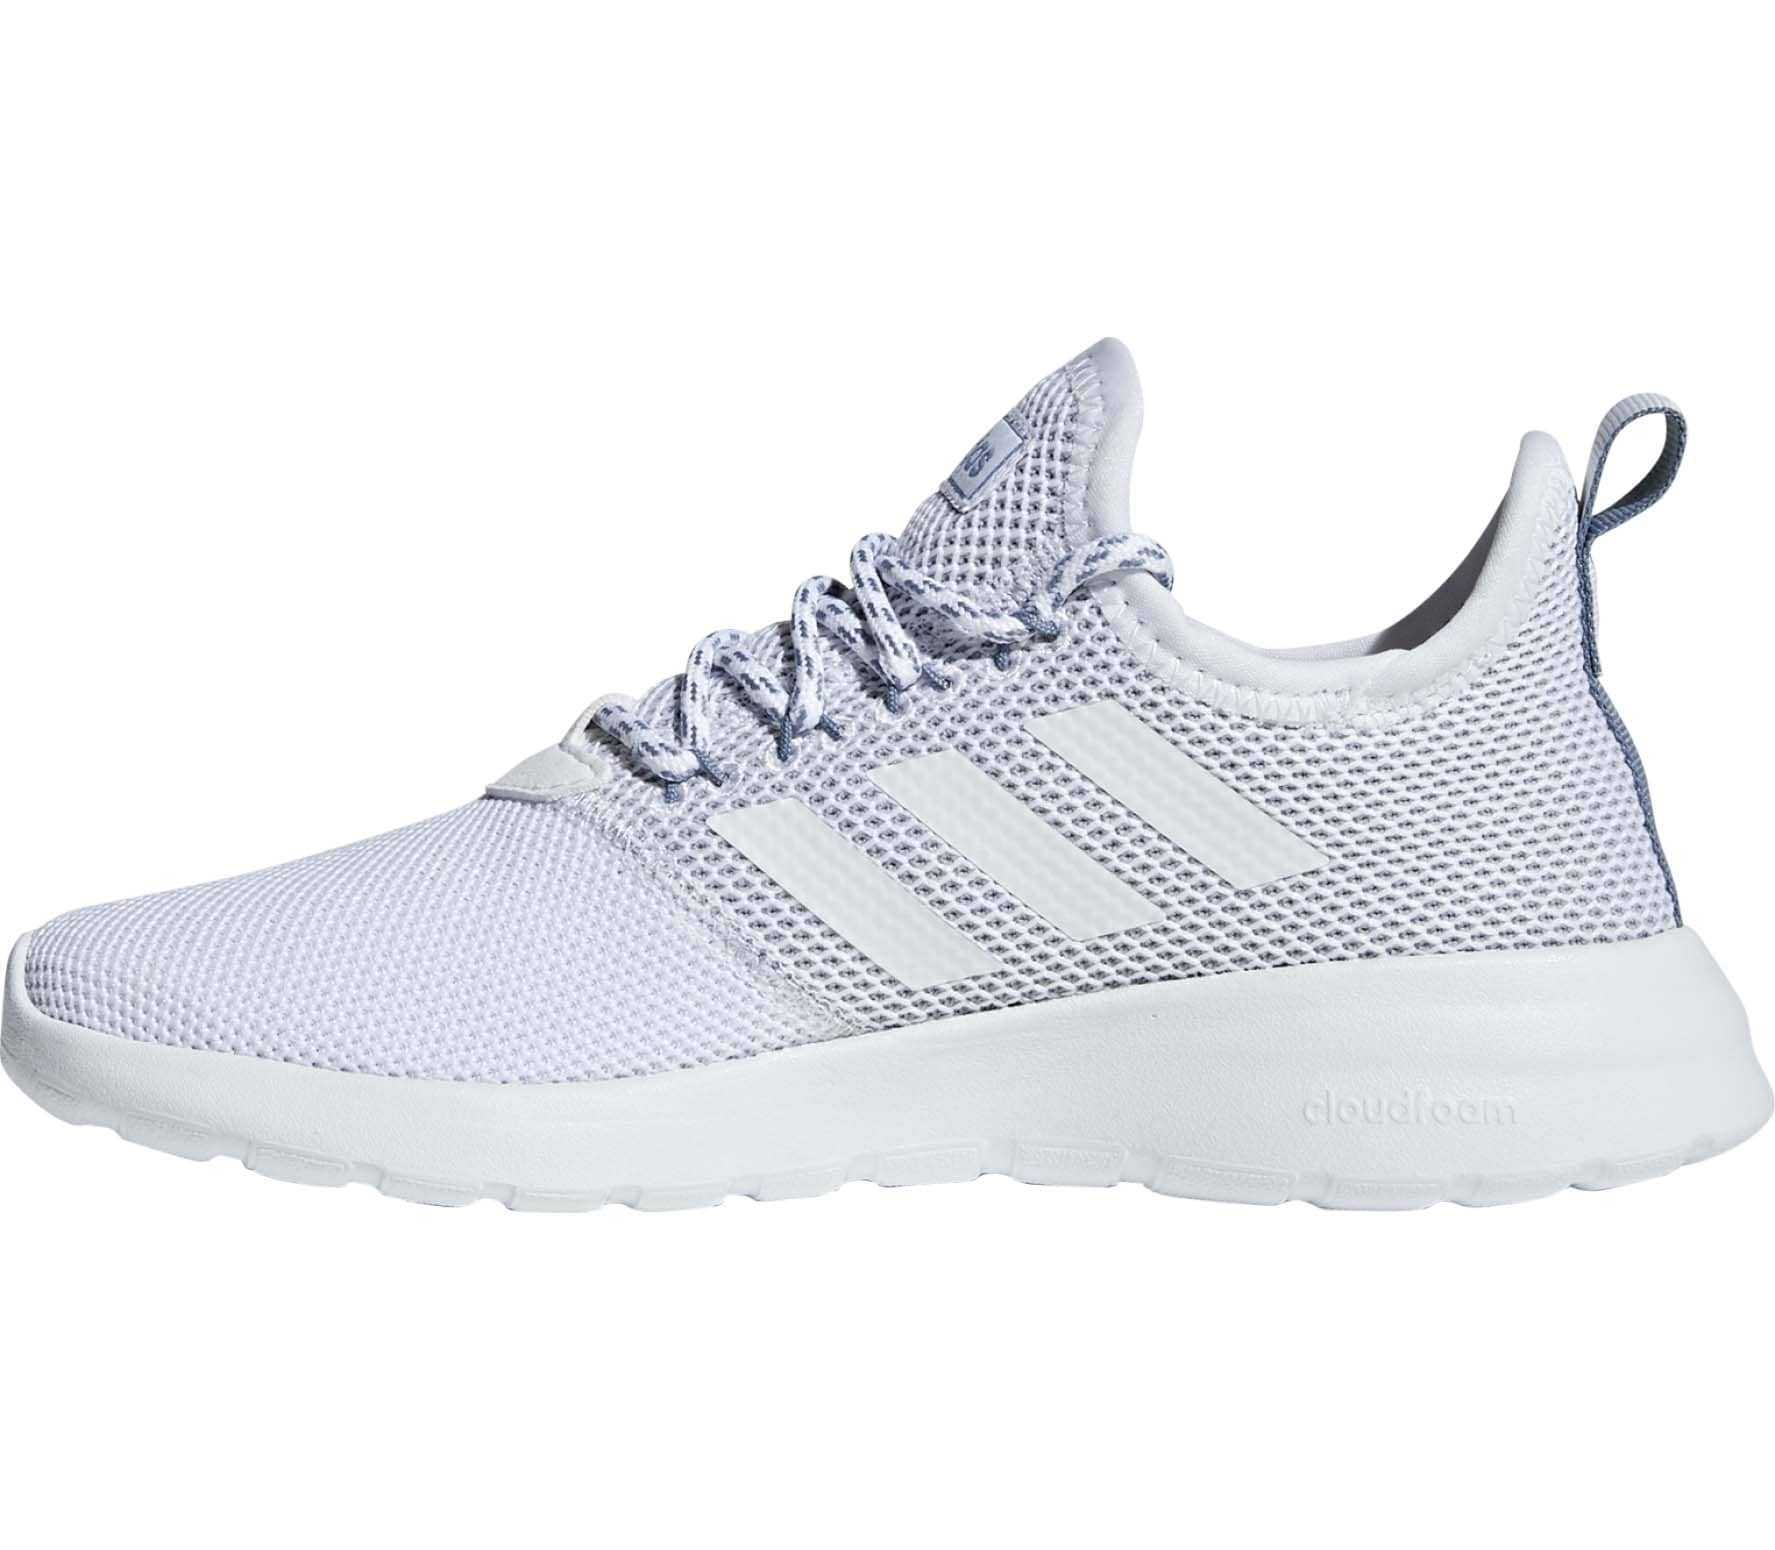 new style e72e4 15f8b adidas Performance - Lite Racer Rbn Mujer Zapatos para correr (blanco)